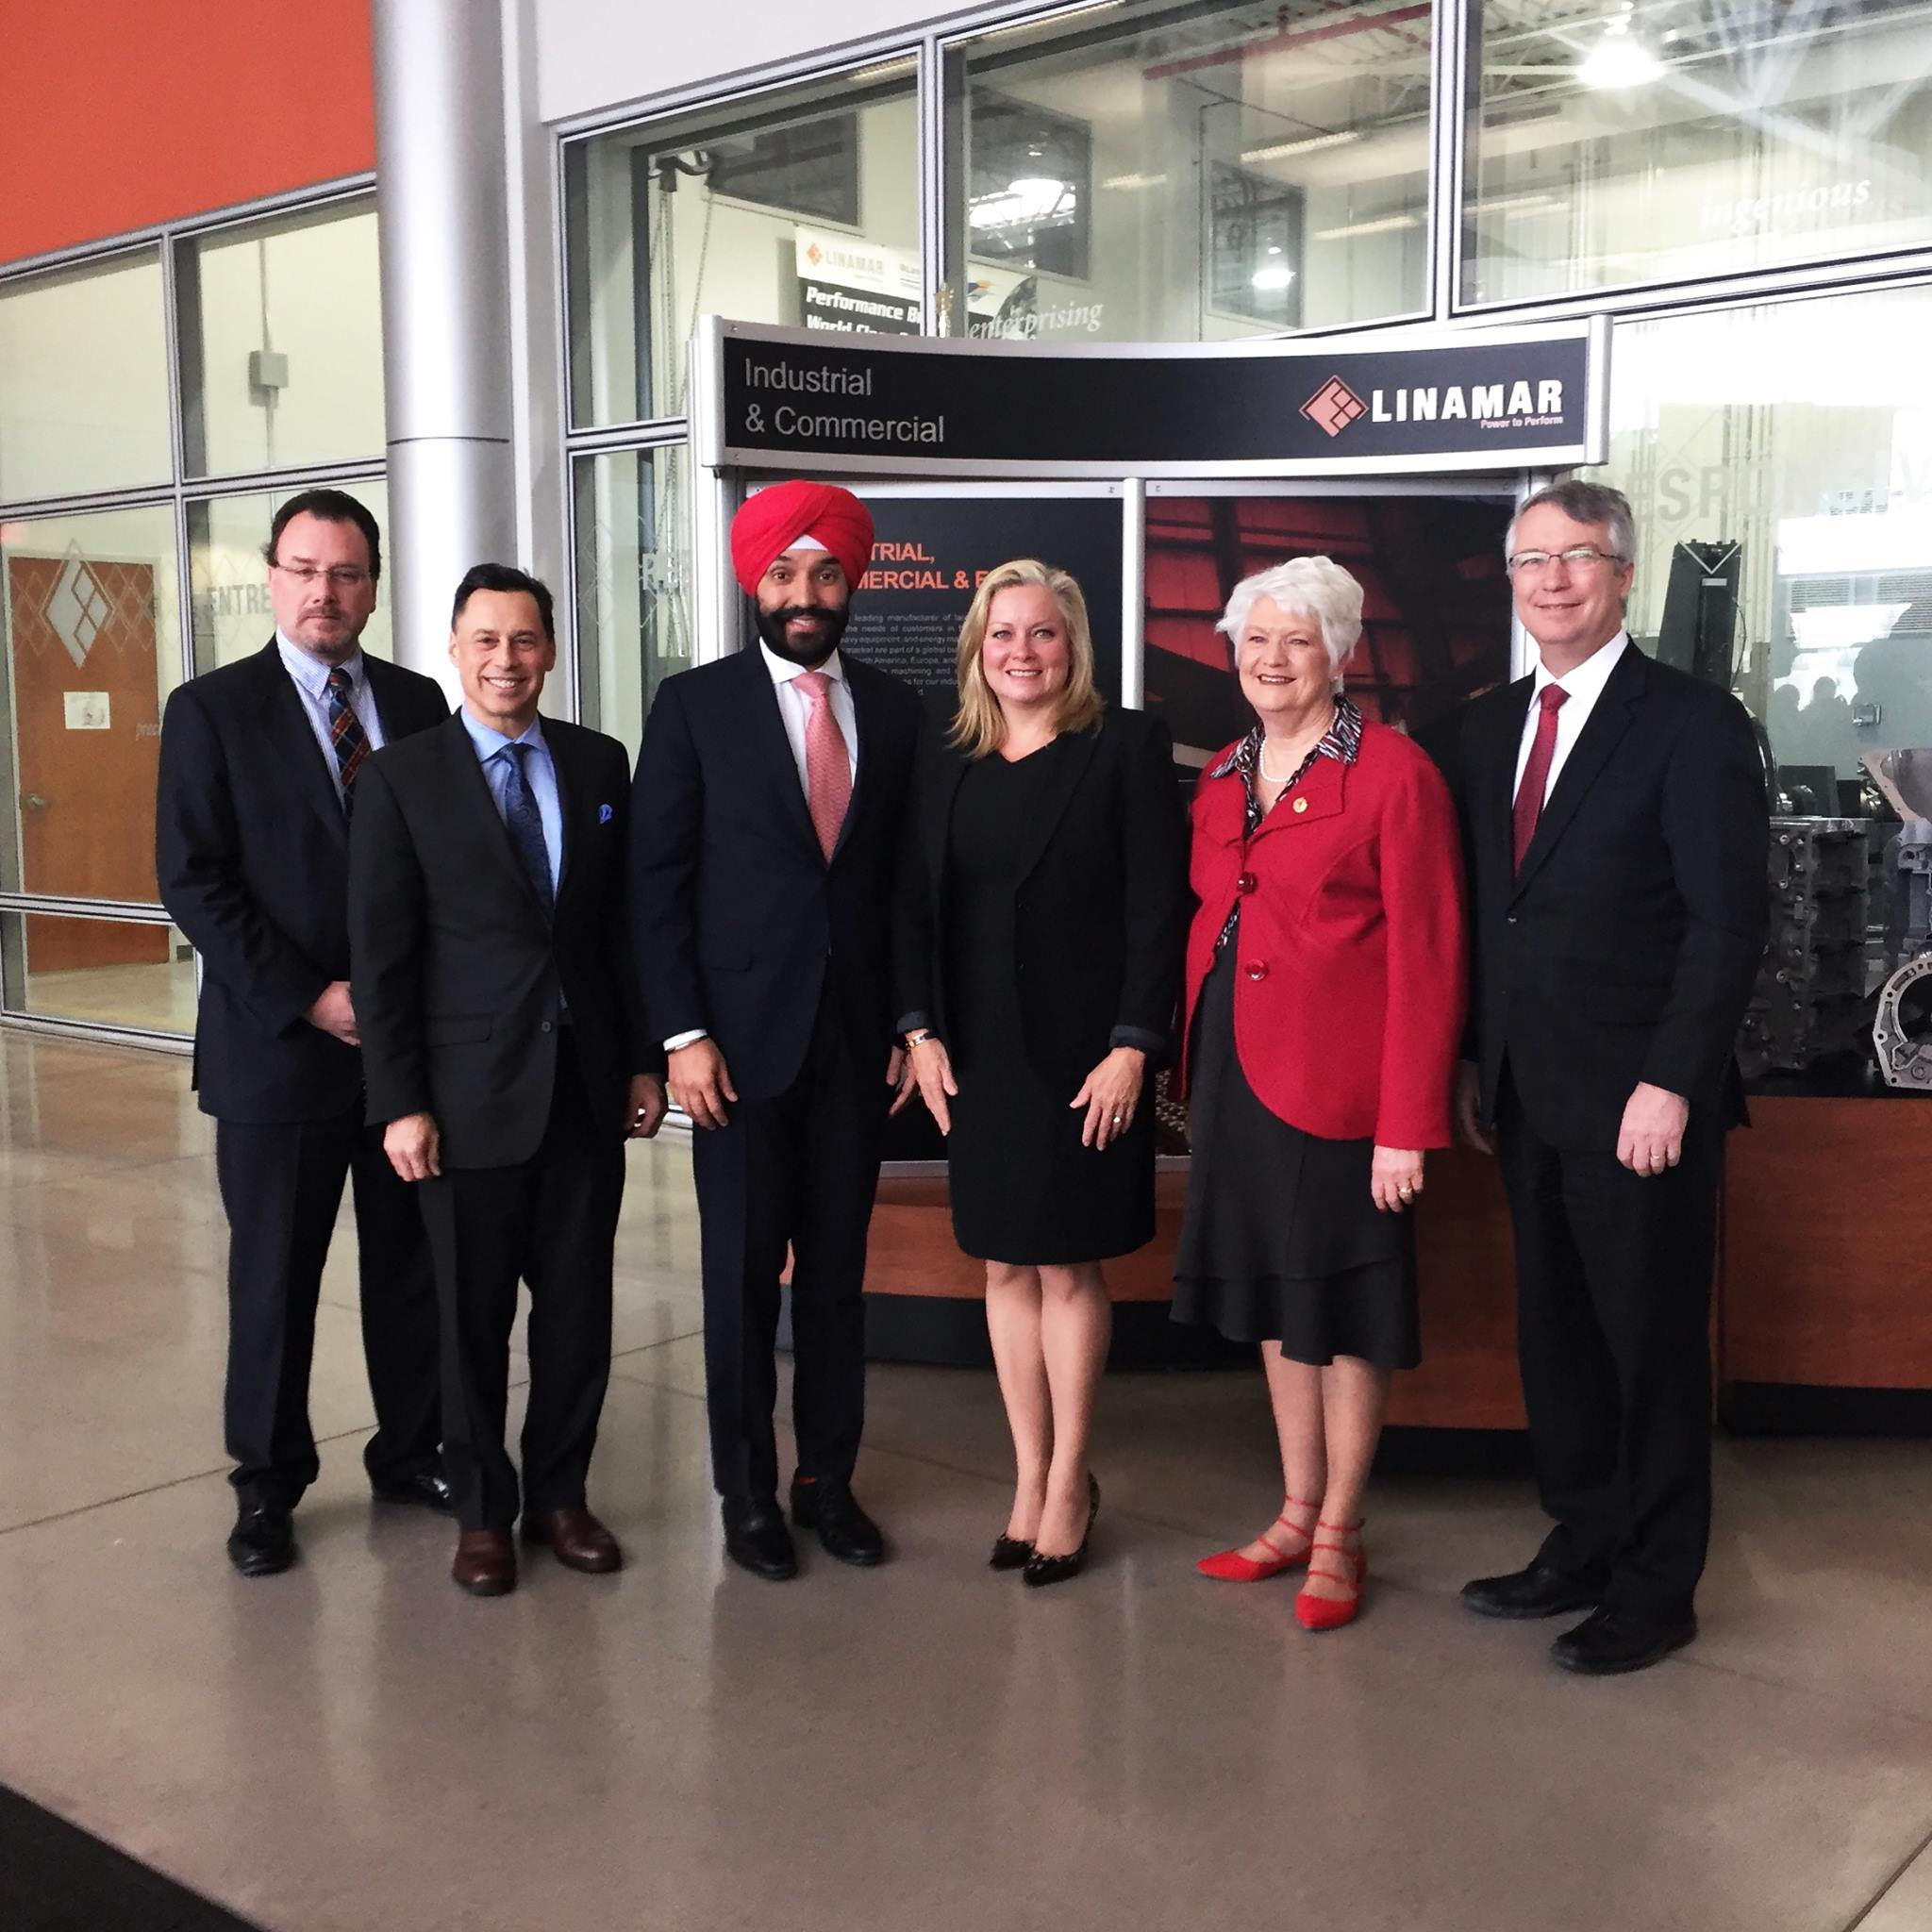 Linamar Corp. to create 1500 jobs at new innovation, research centre